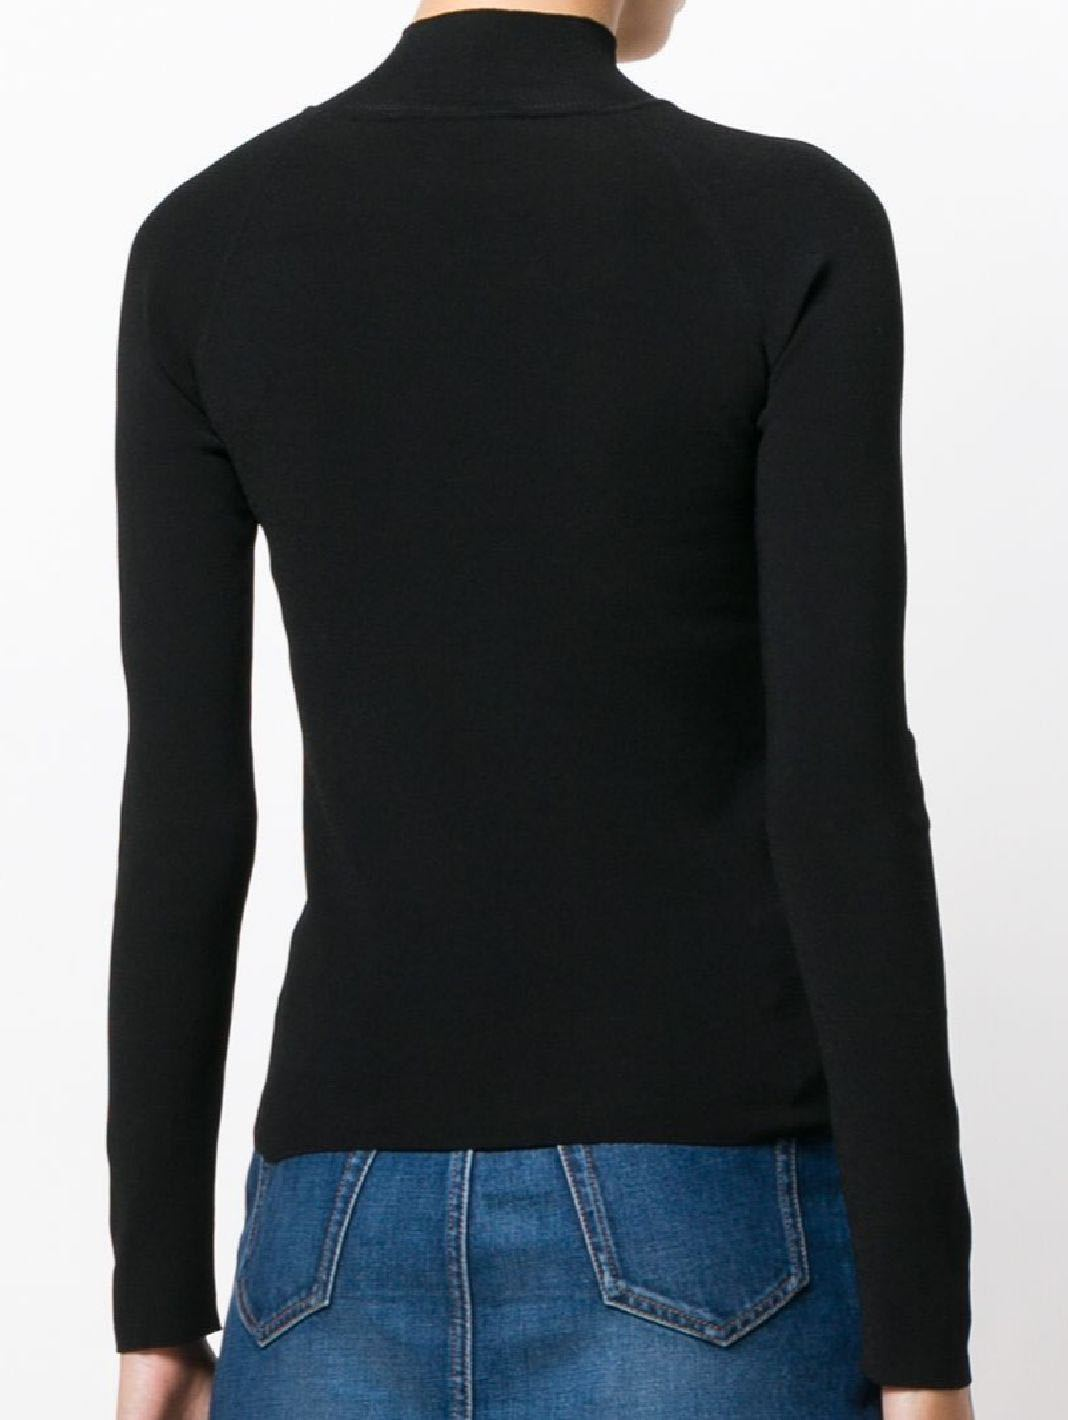 Logo Intarsia Knit Turtleneck Sweater - The Bobby Boga